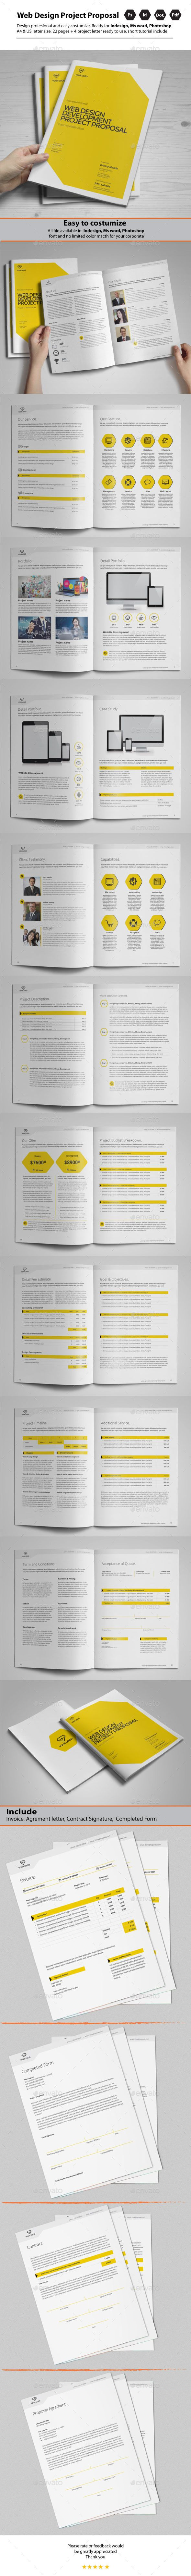 42 Best Images About Format-Proposal Template On Pinterest